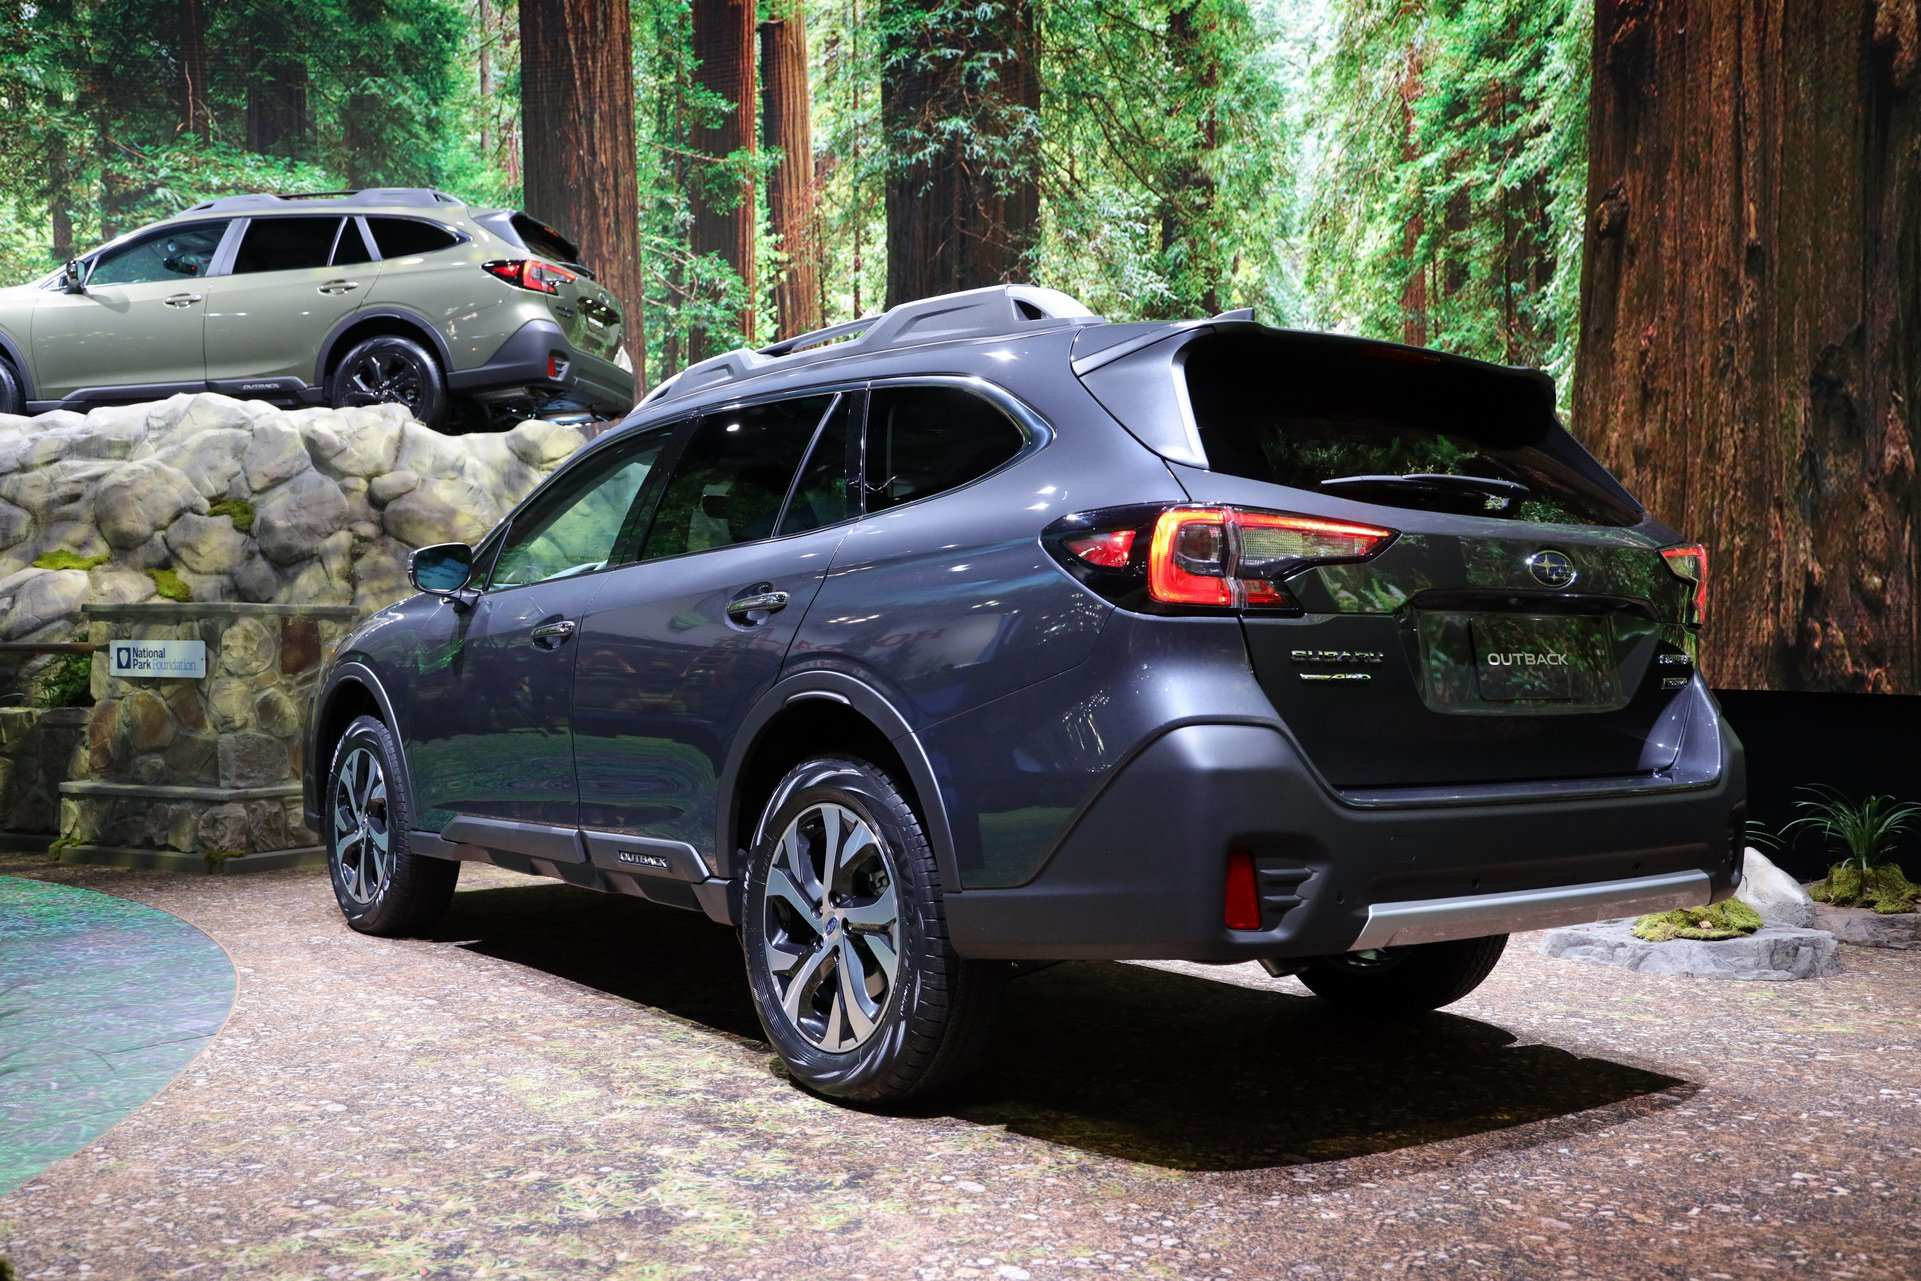 67 All New New Generation 2020 Subaru Outback Overview for New Generation 2020 Subaru Outback